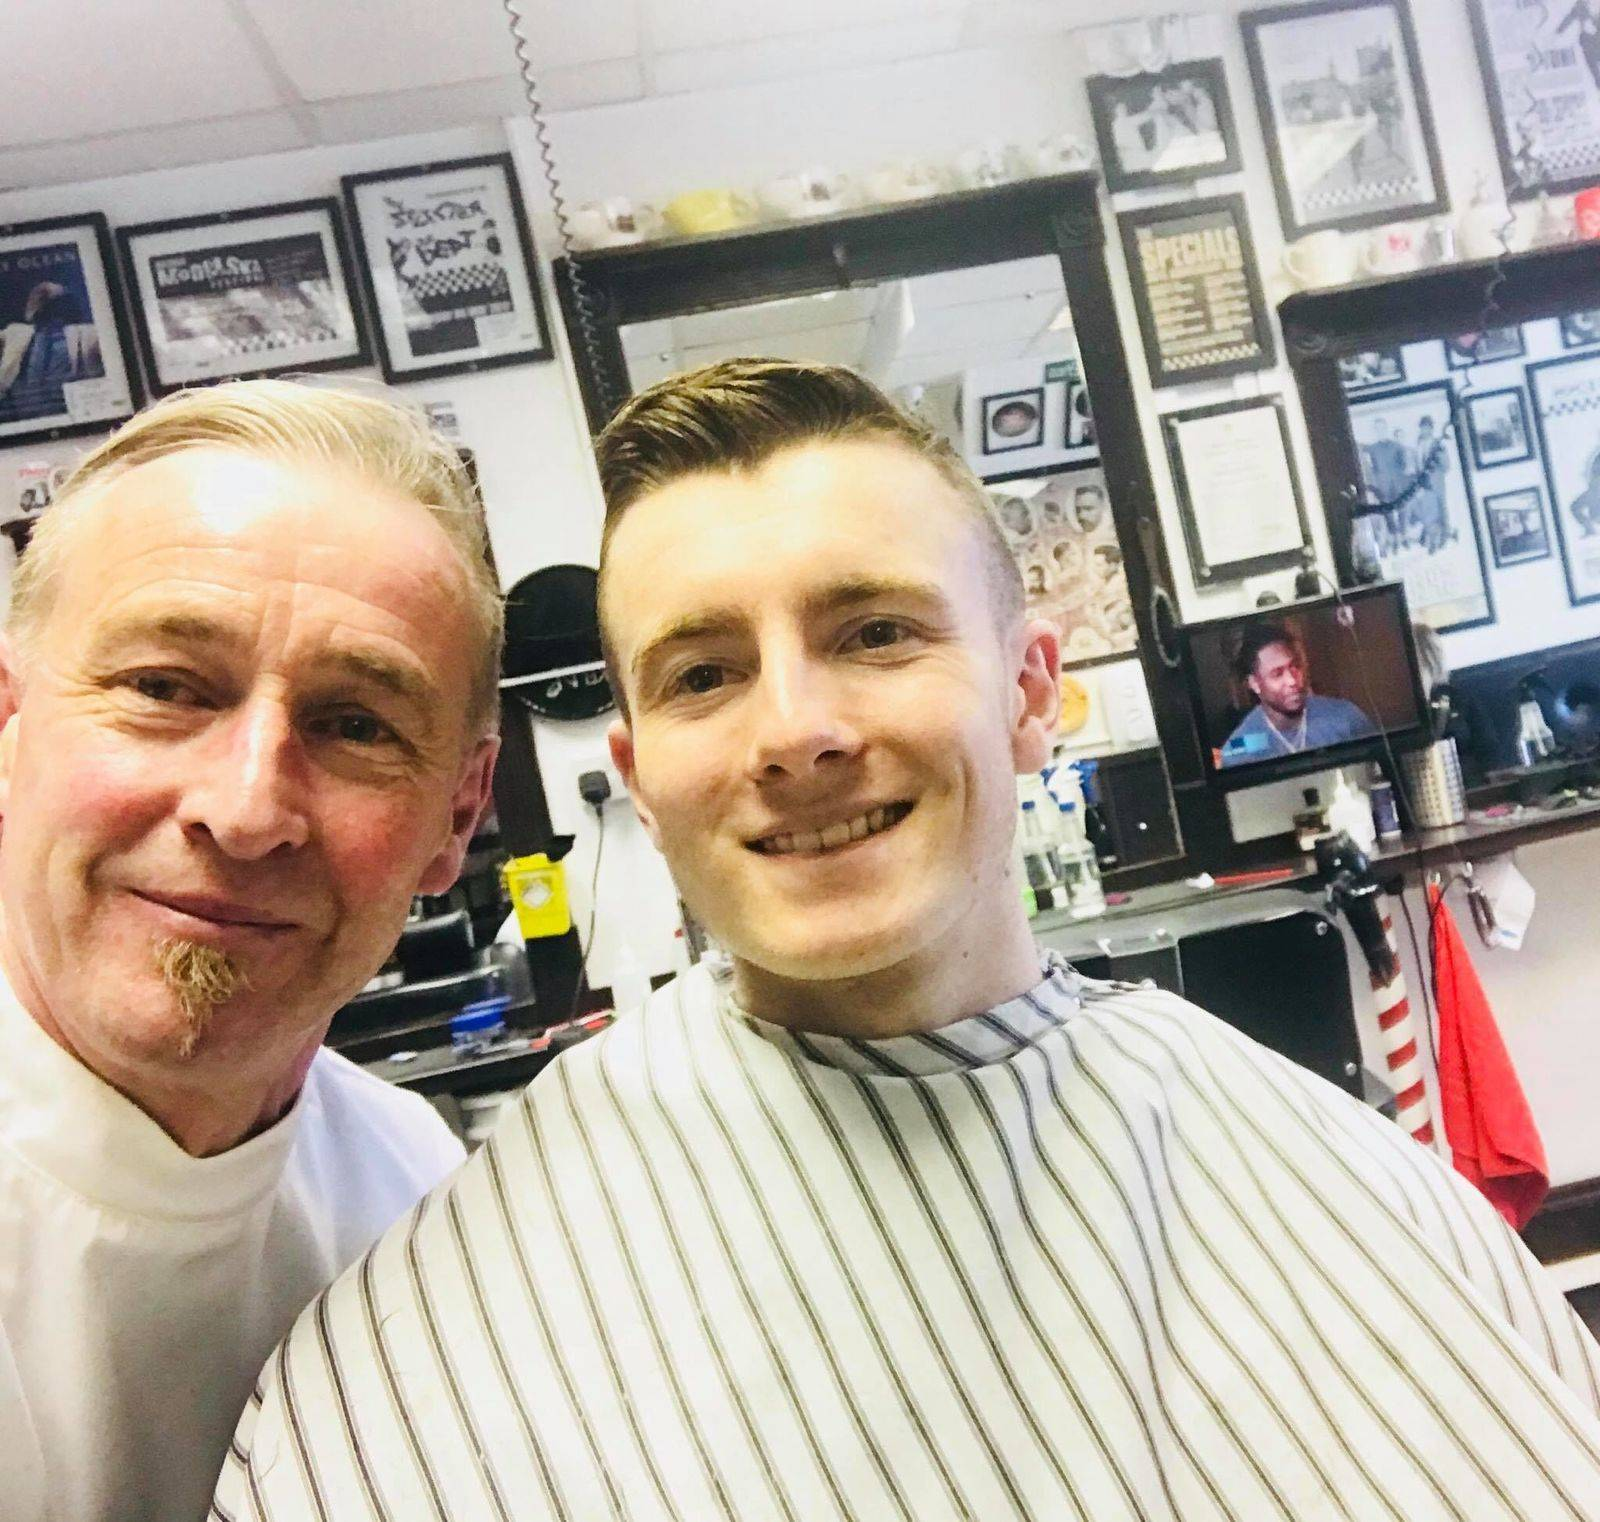 Had the youngest (at 17) to play Ice hockey for the Belfast Giants, Ross Hancock called in today on his travels, a nice lad:) a busy one! 9am-5pm tomorrow with 4 on ✂️